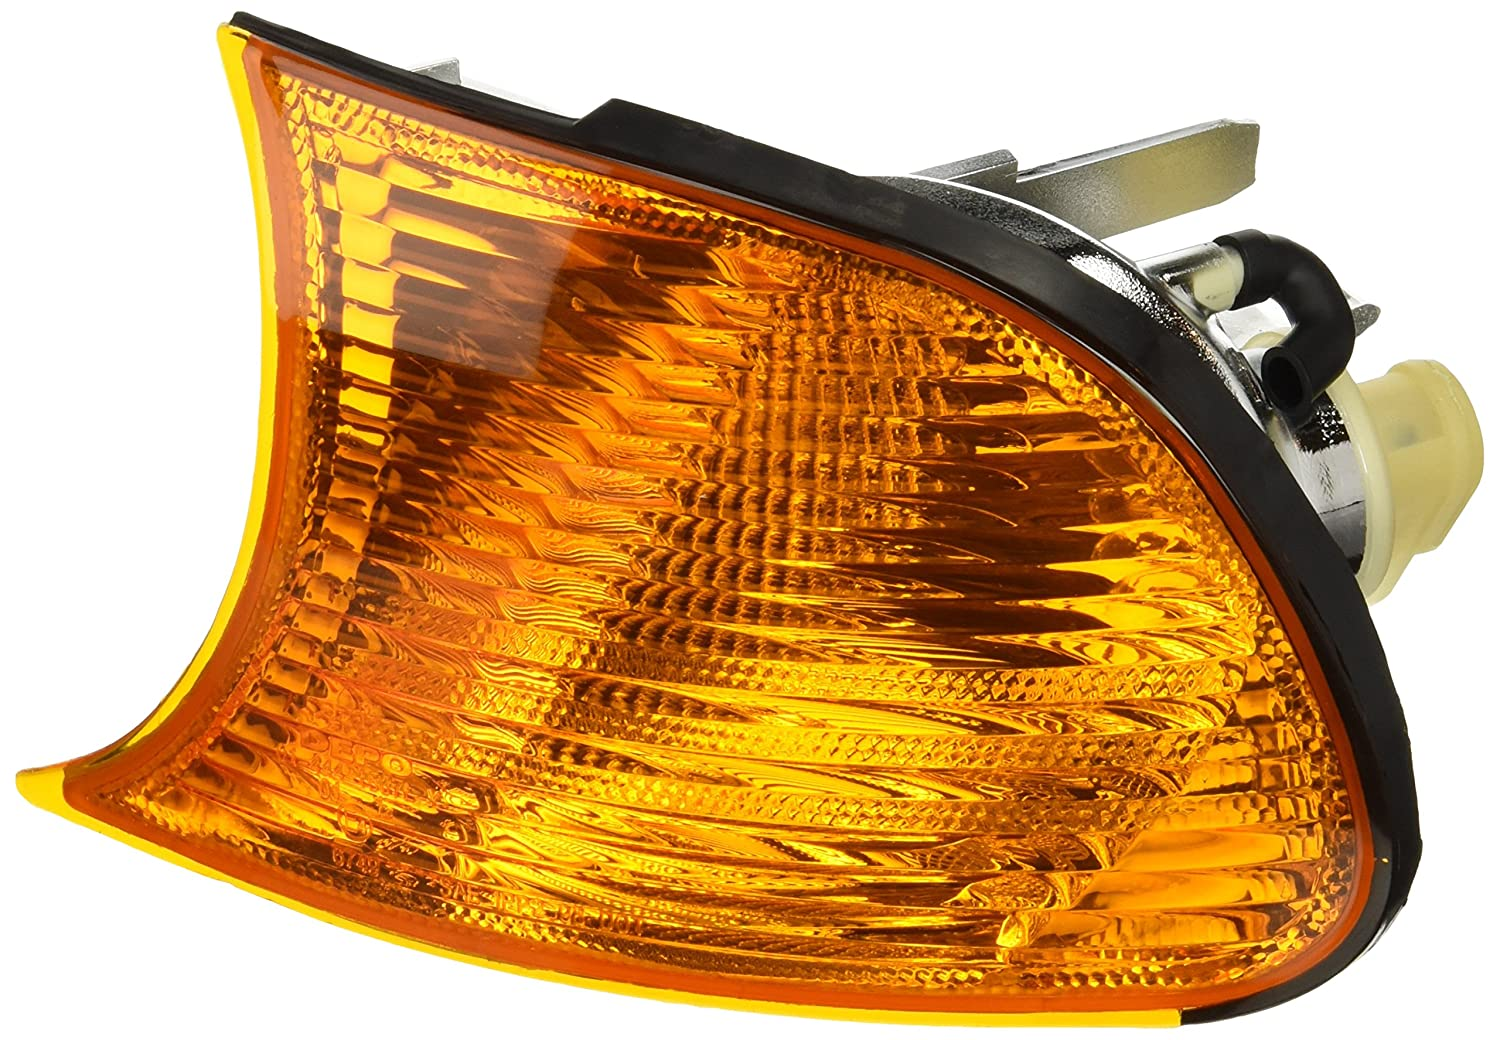 Depo 444-1507R-AQ-Y BMW M3 Series Passenger Side Replacement Parking/Signal Light Assembly 02-00-444-1507R-AQ-Y